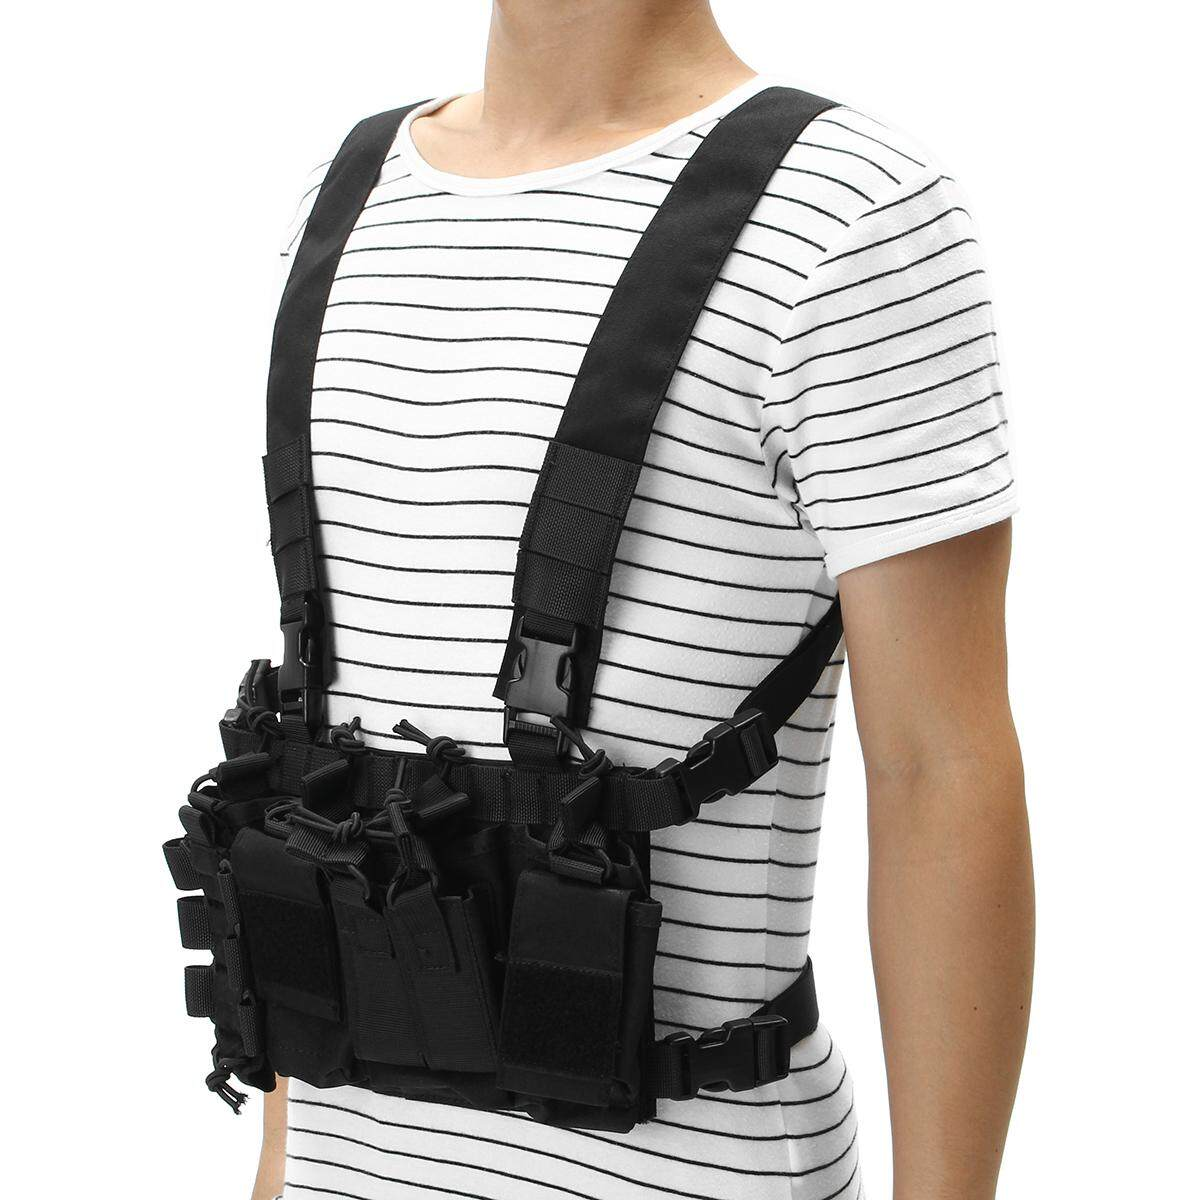 Dlp Tactical D3 Universal Chest Rig With 223 / 308 Pouches By Glimmer.